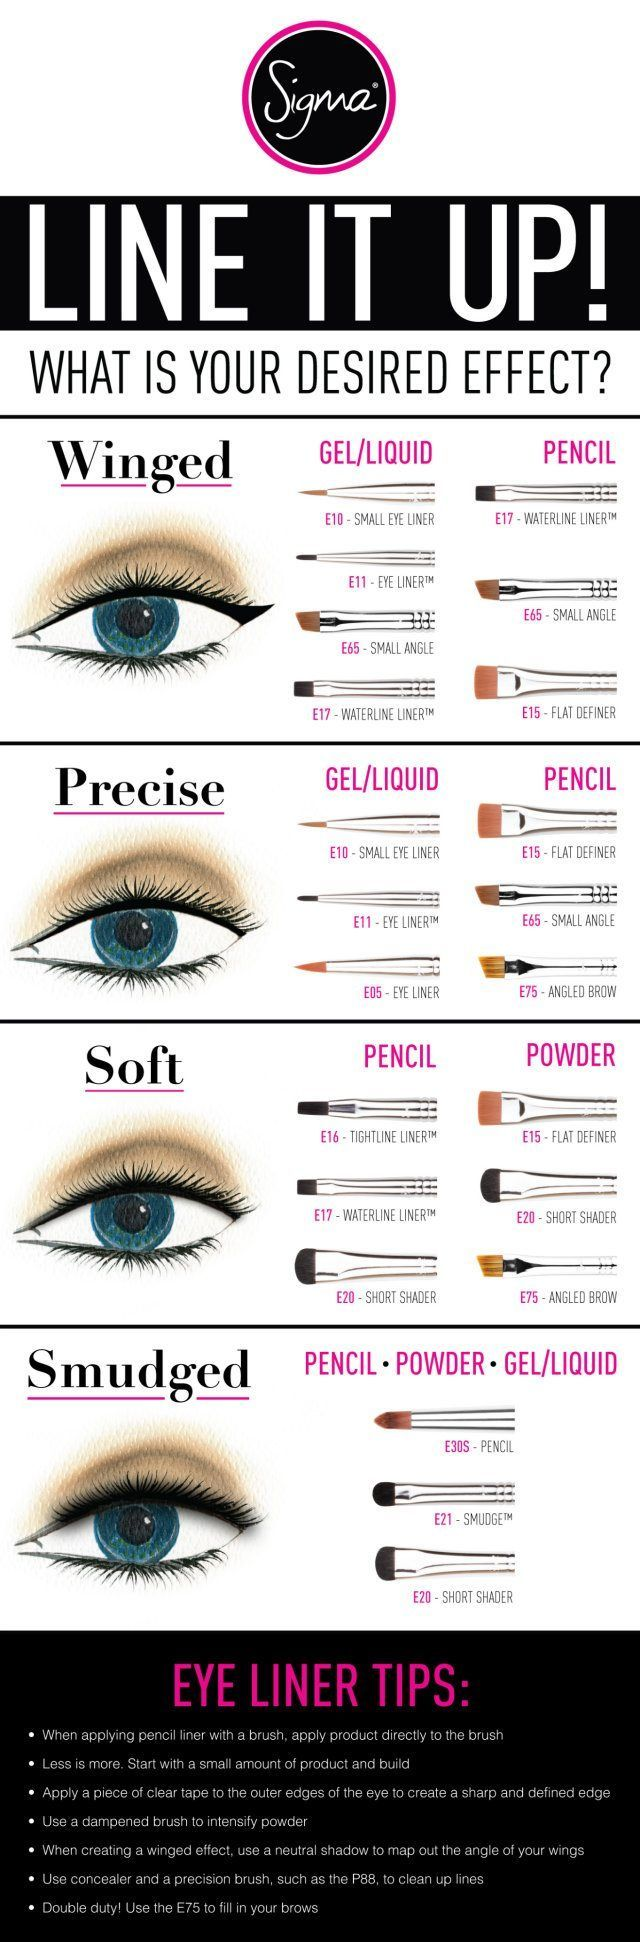 Eyeliner tips according to SIGMA. From http://www.reddit.com/r/BeautyDiagrams/comments/2o1tz2/eyeliner_tips_according_to_sigma/